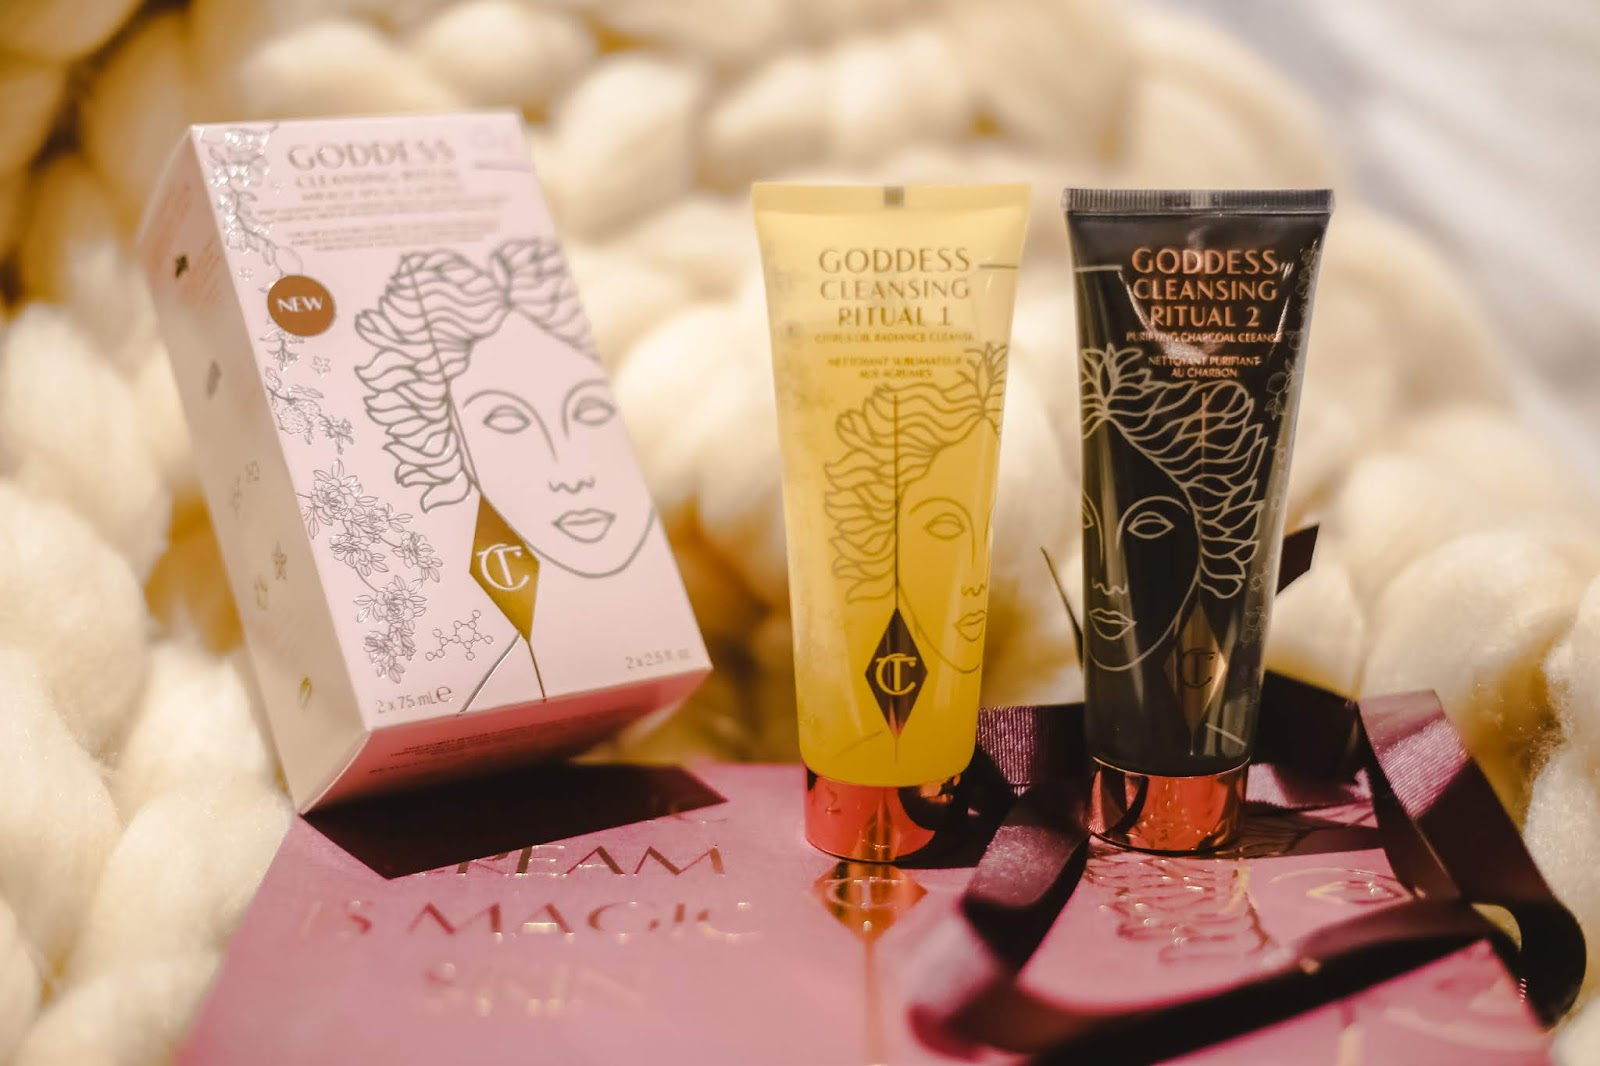 Charlotte Tilbury cleanser review